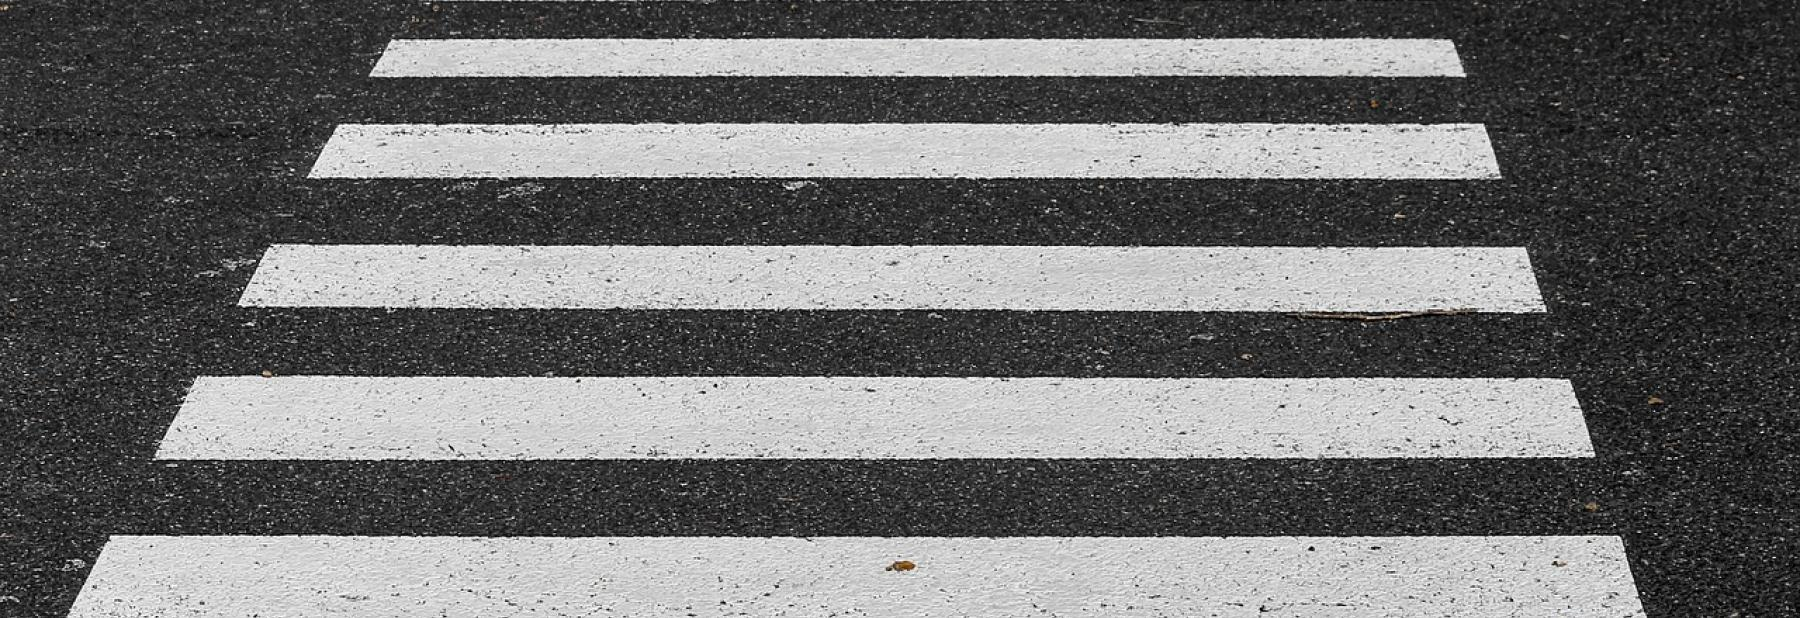 crosswalk-3712127_1280